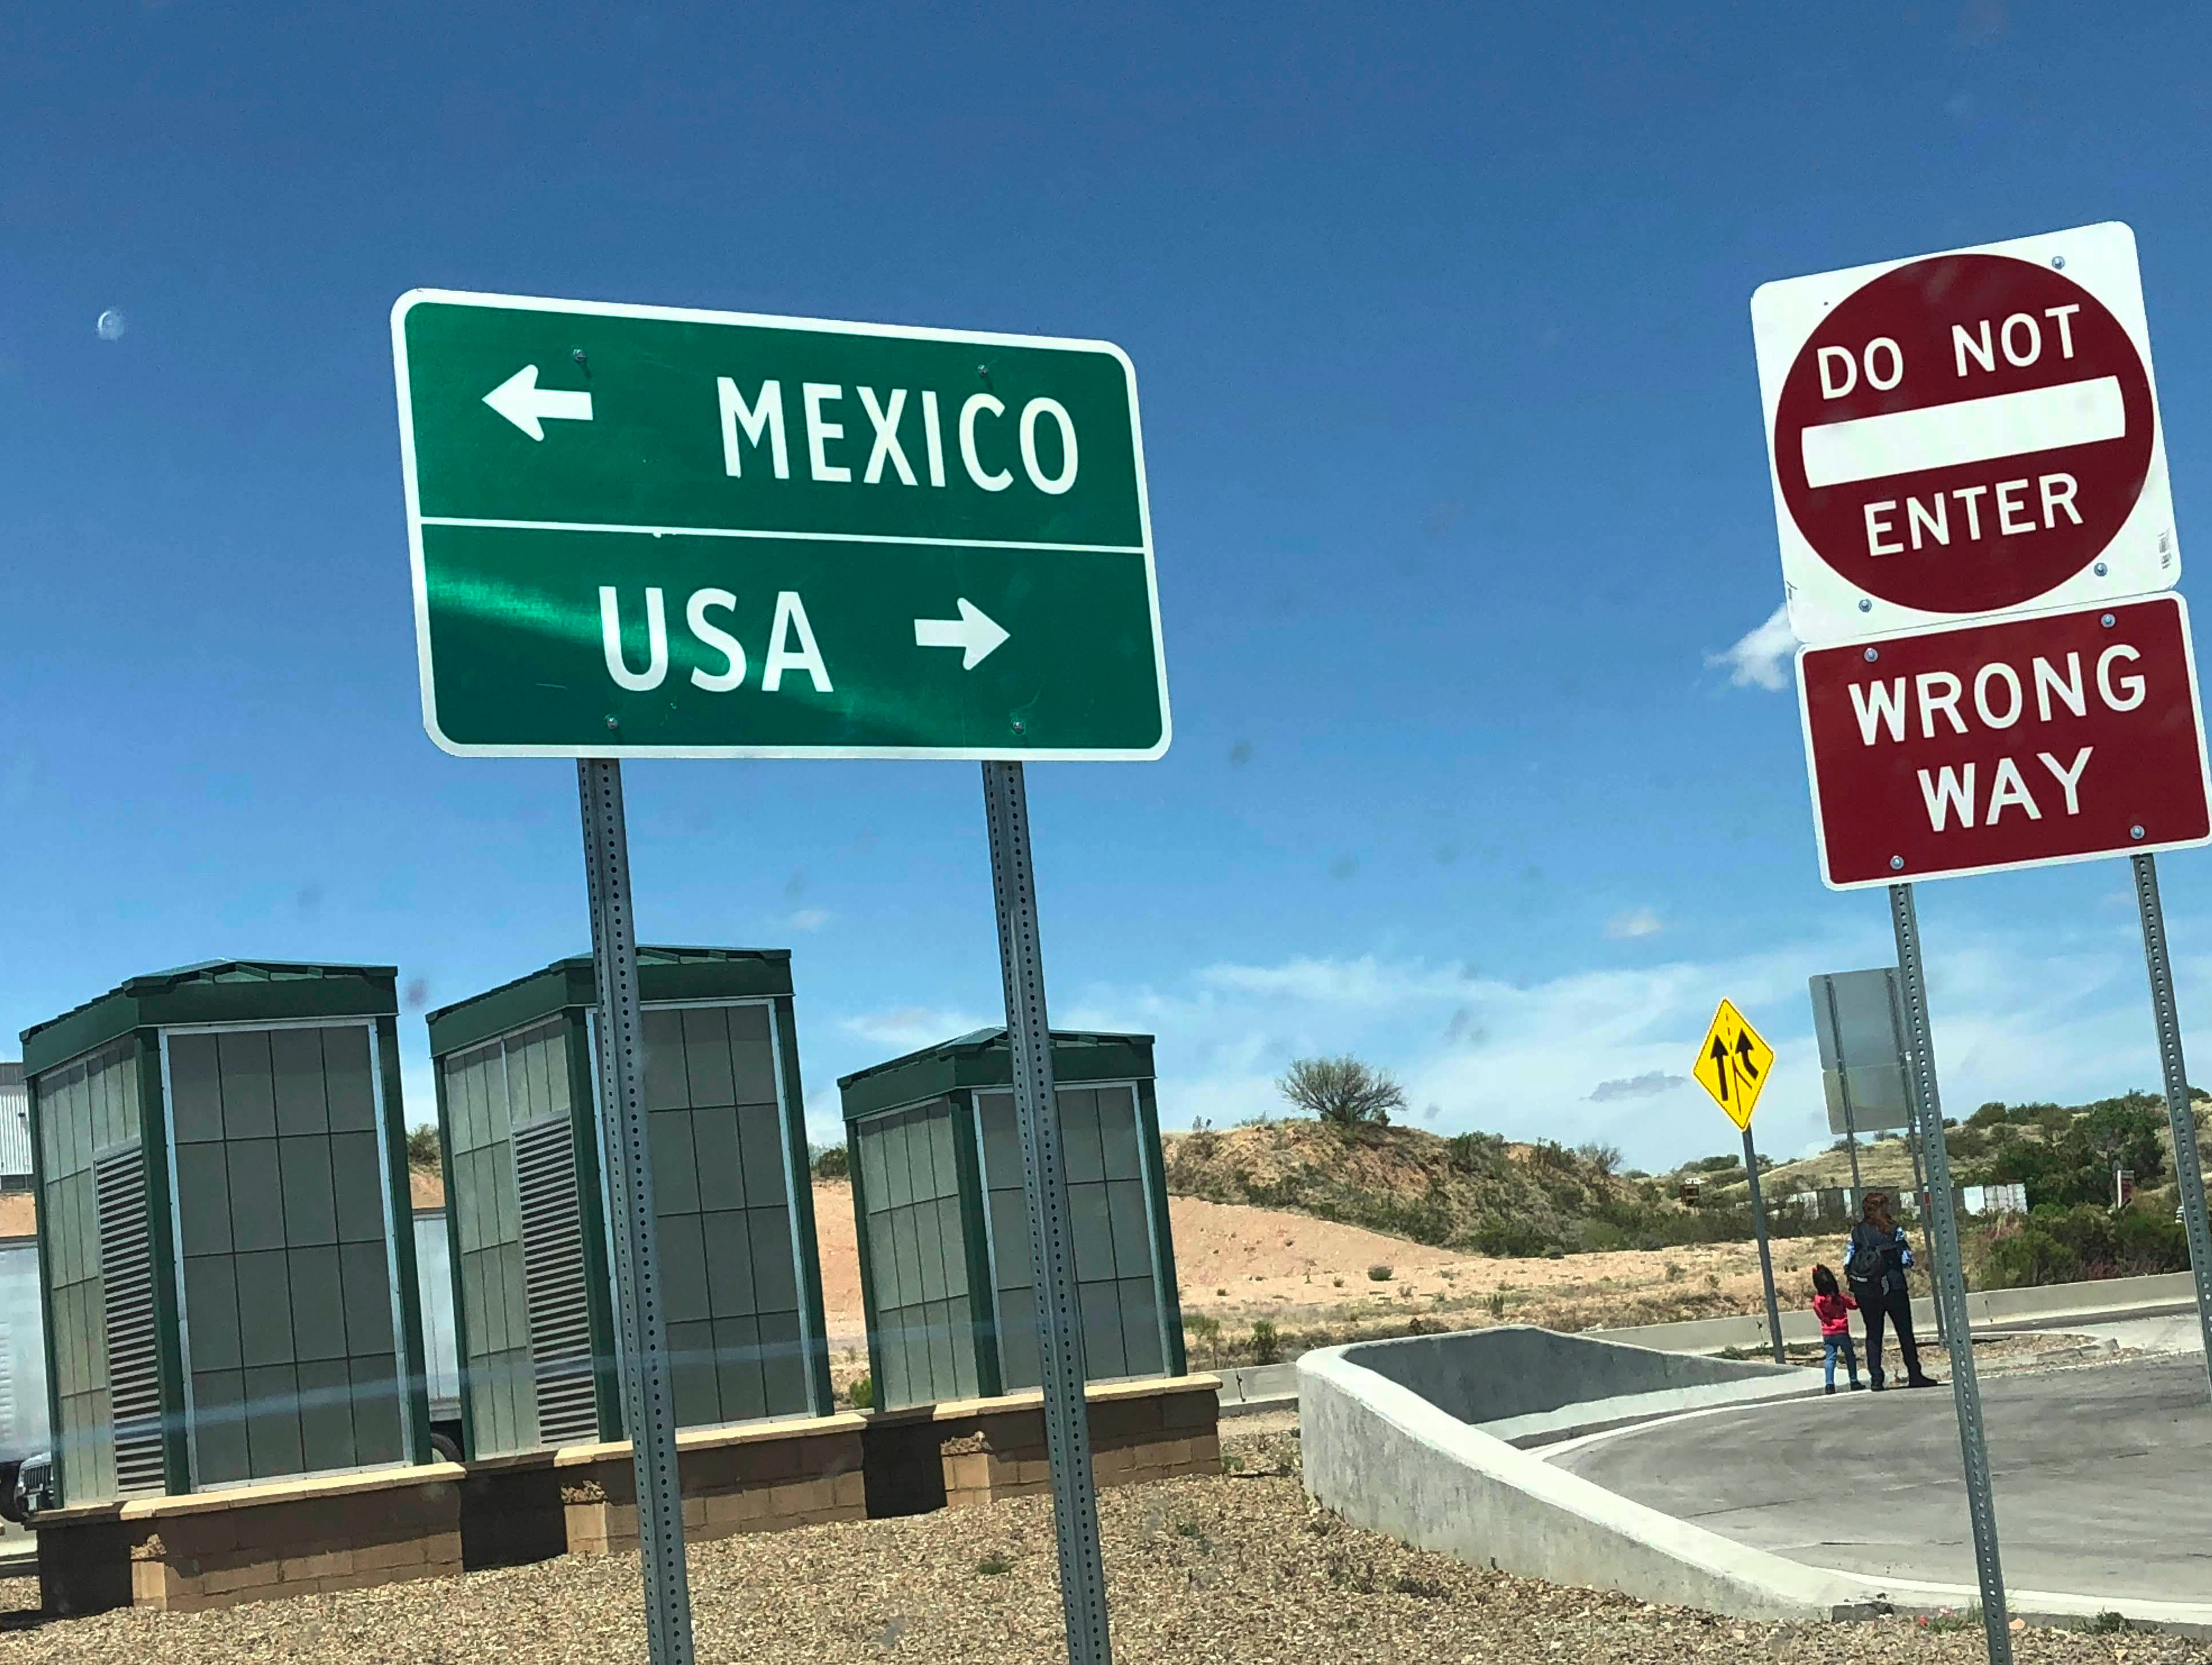 Mexicans seeking asylum in the United States could be sent to Guatemala under a bilateral agreement.